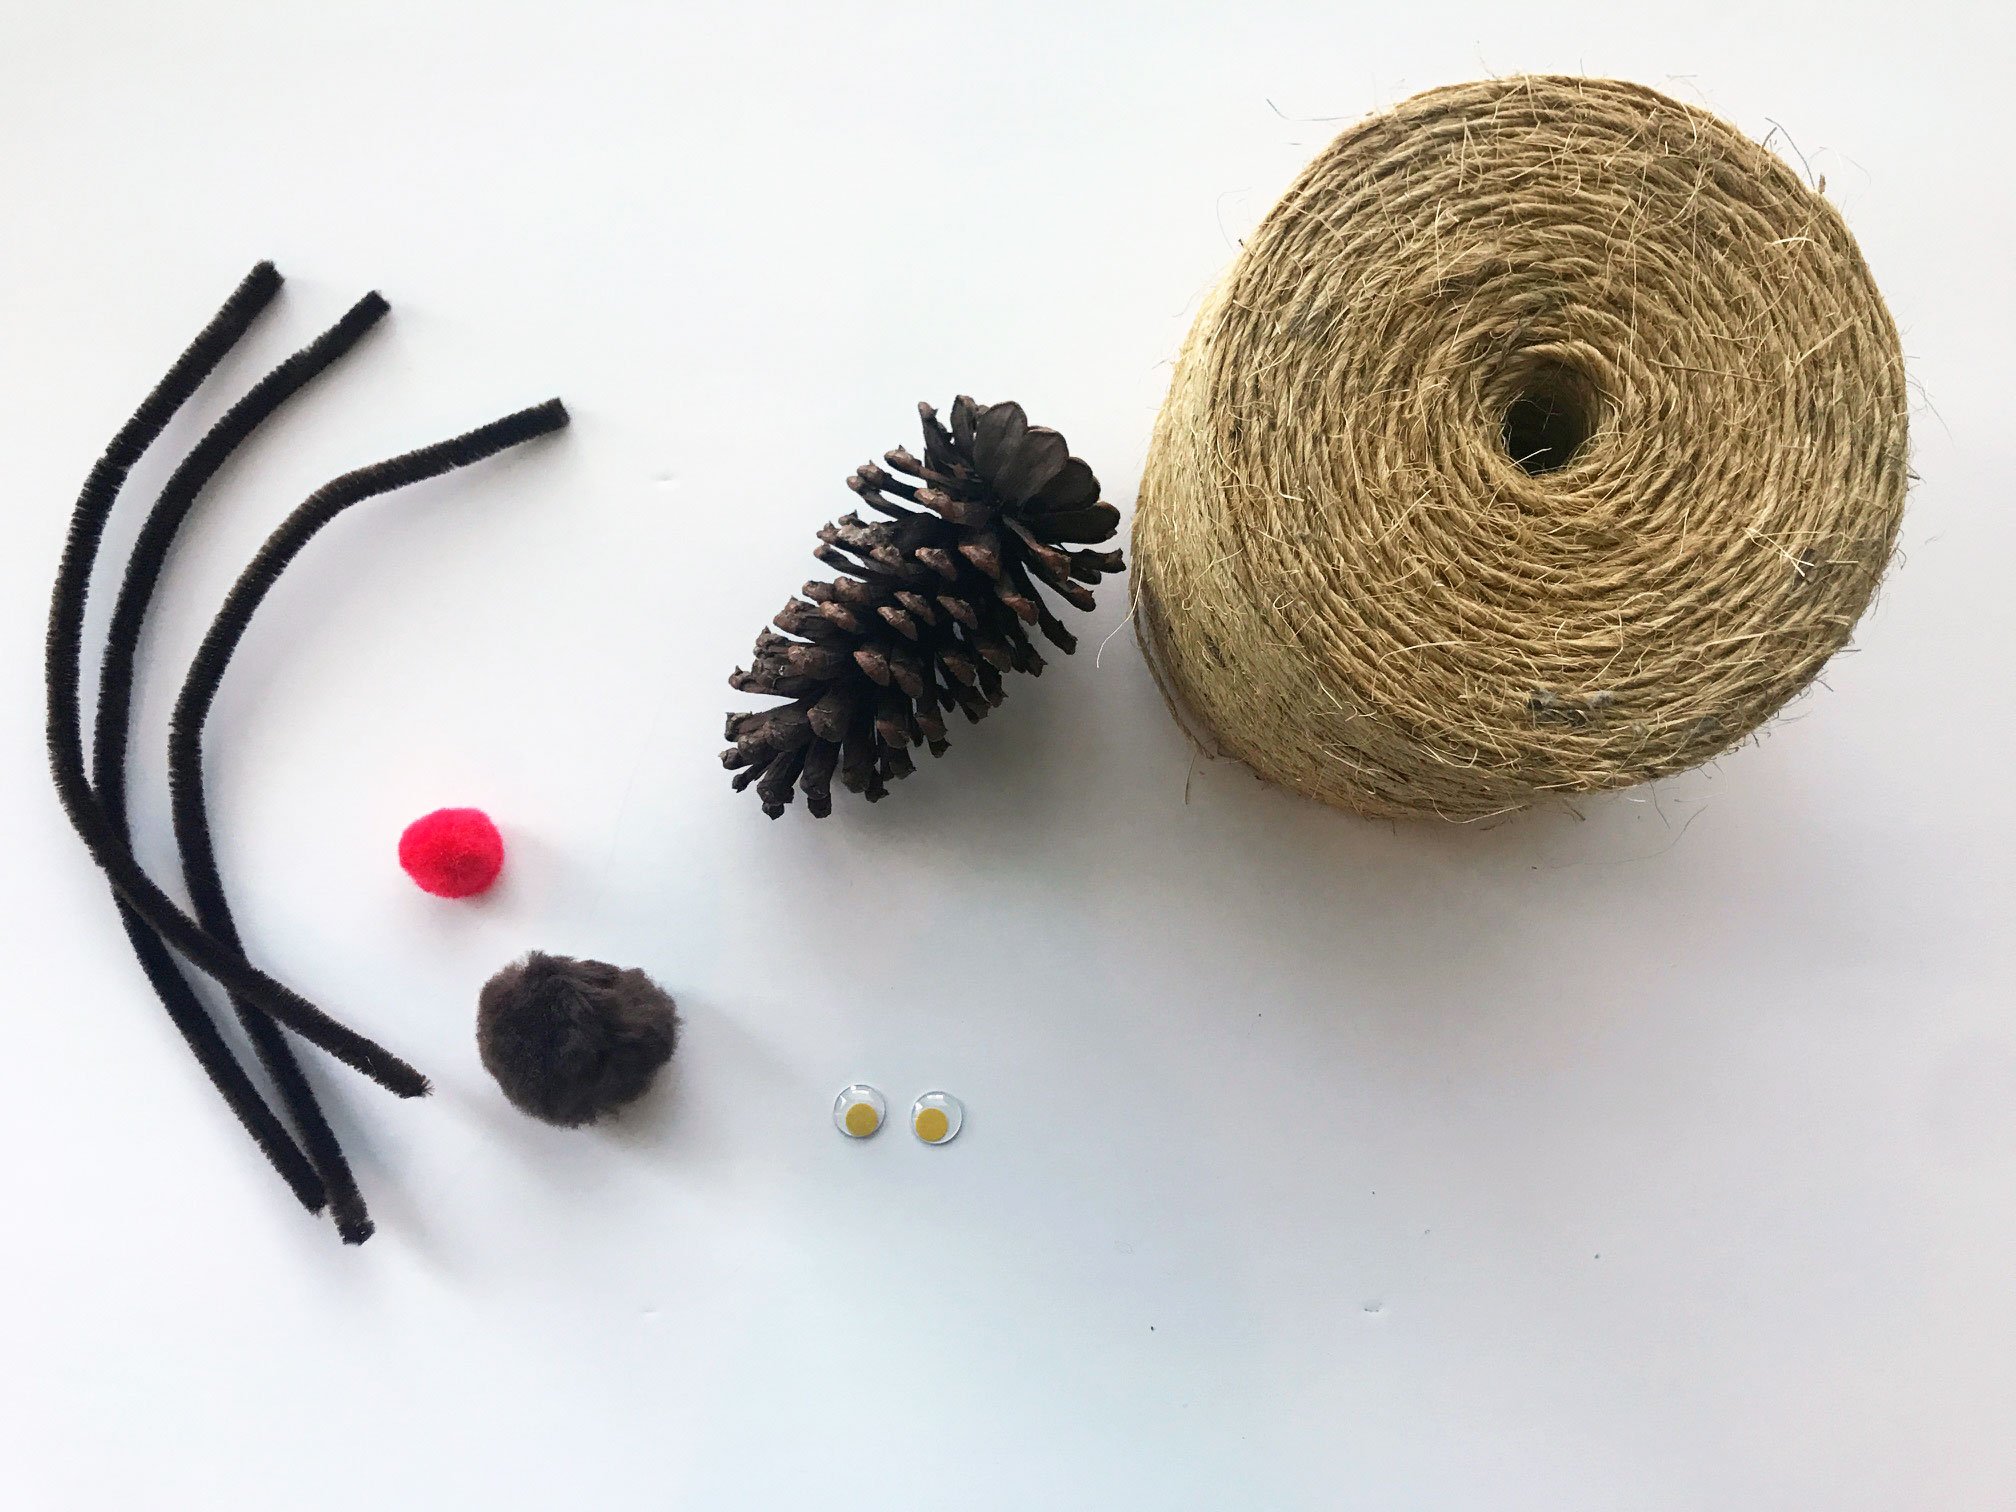 materials needed for Rudolph pine cone ornament